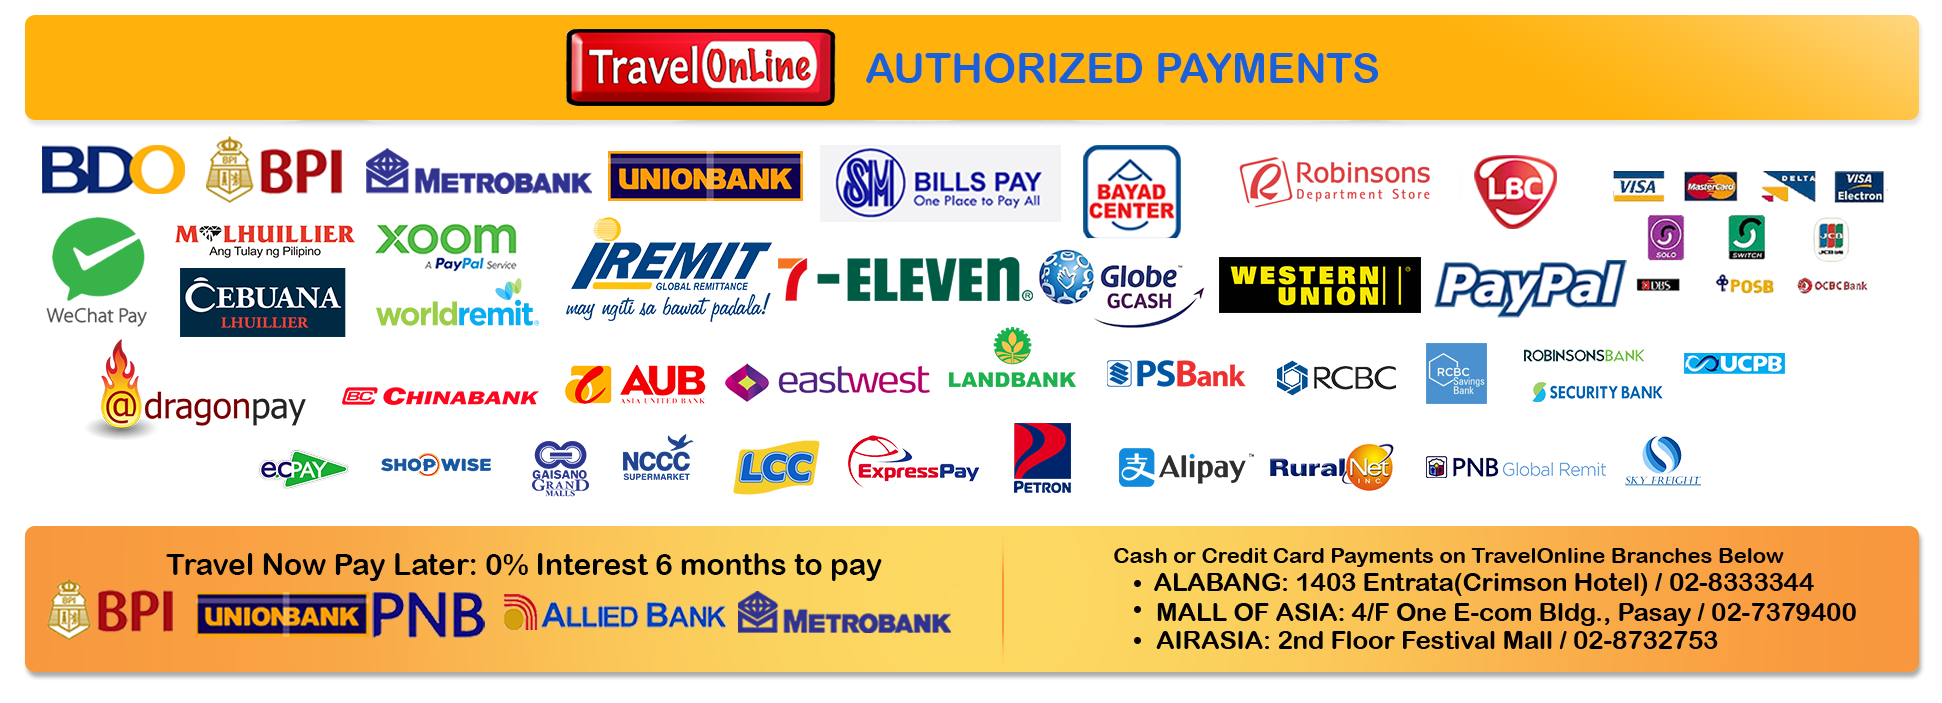 TravelOnline Philippines Travel Agency Contact Page